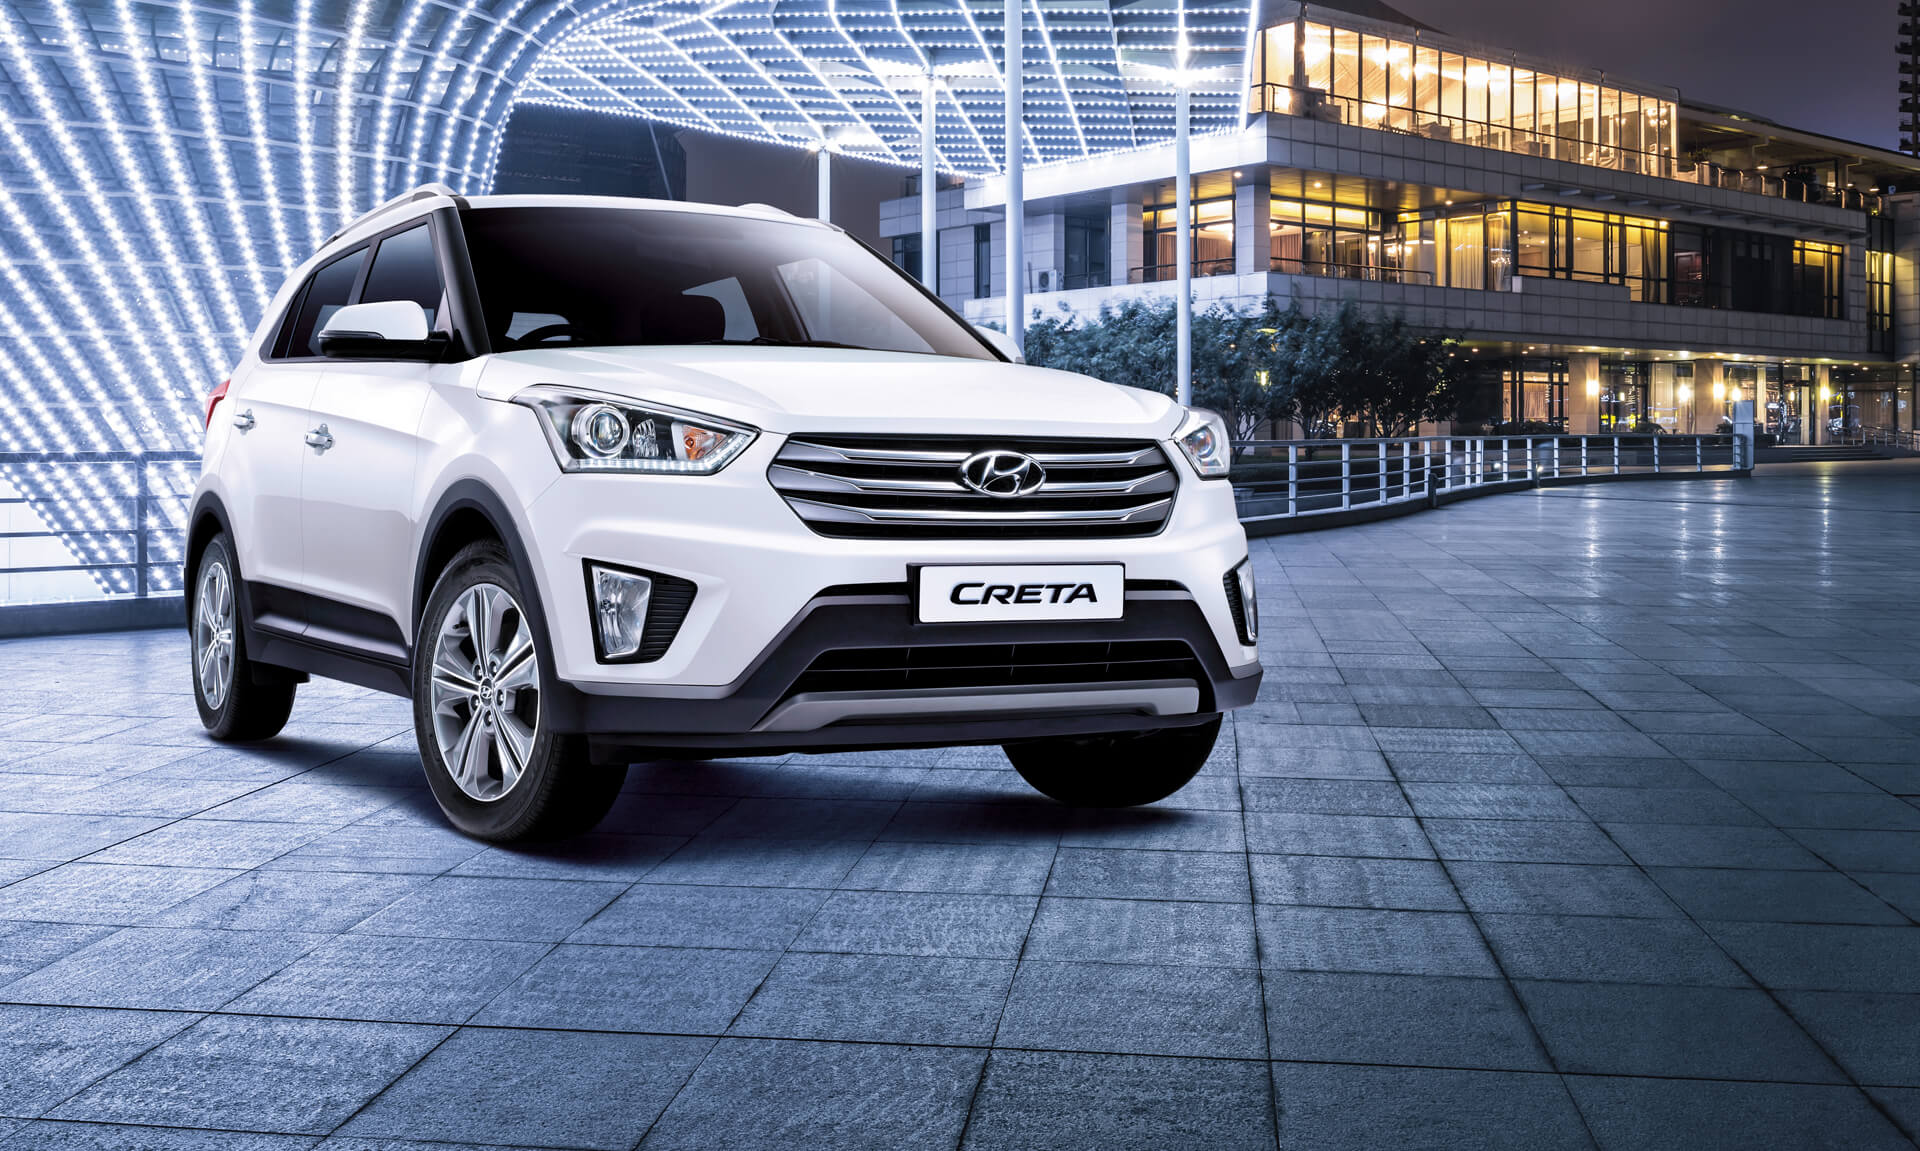 Hyundai Creta Desktop wallpaper